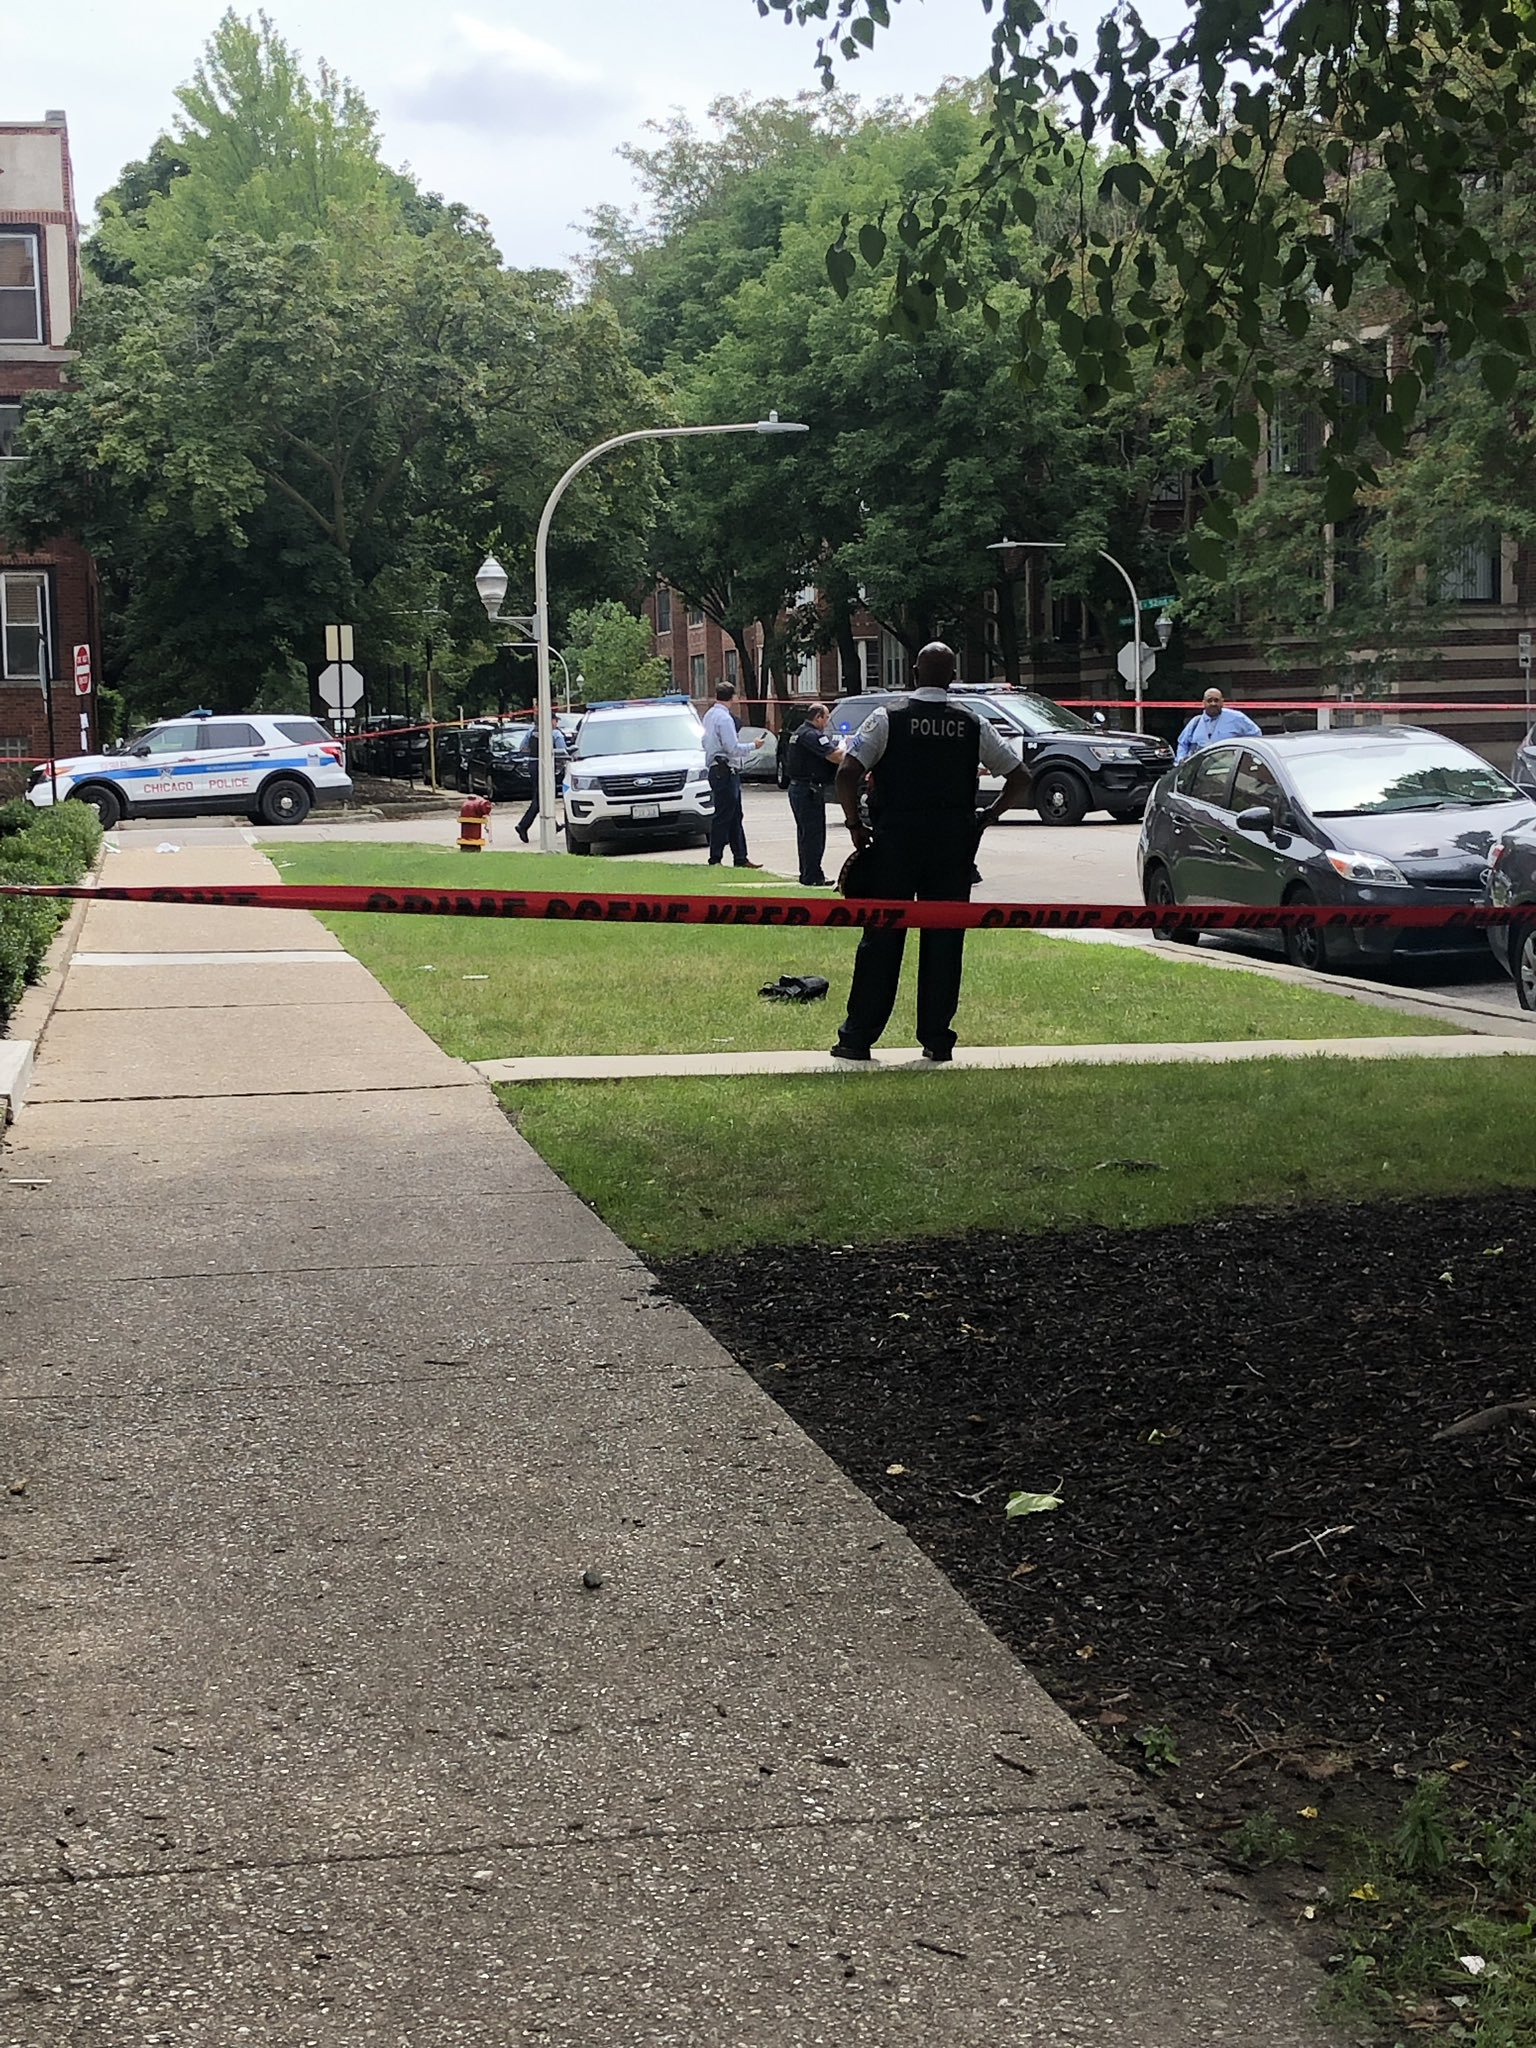 Authorities are investigating after a Chicago police officer shot a suspected burglar at a neighbor's home Aug. 21, 2019, in the 5100 block of South Ingleside Avenue.